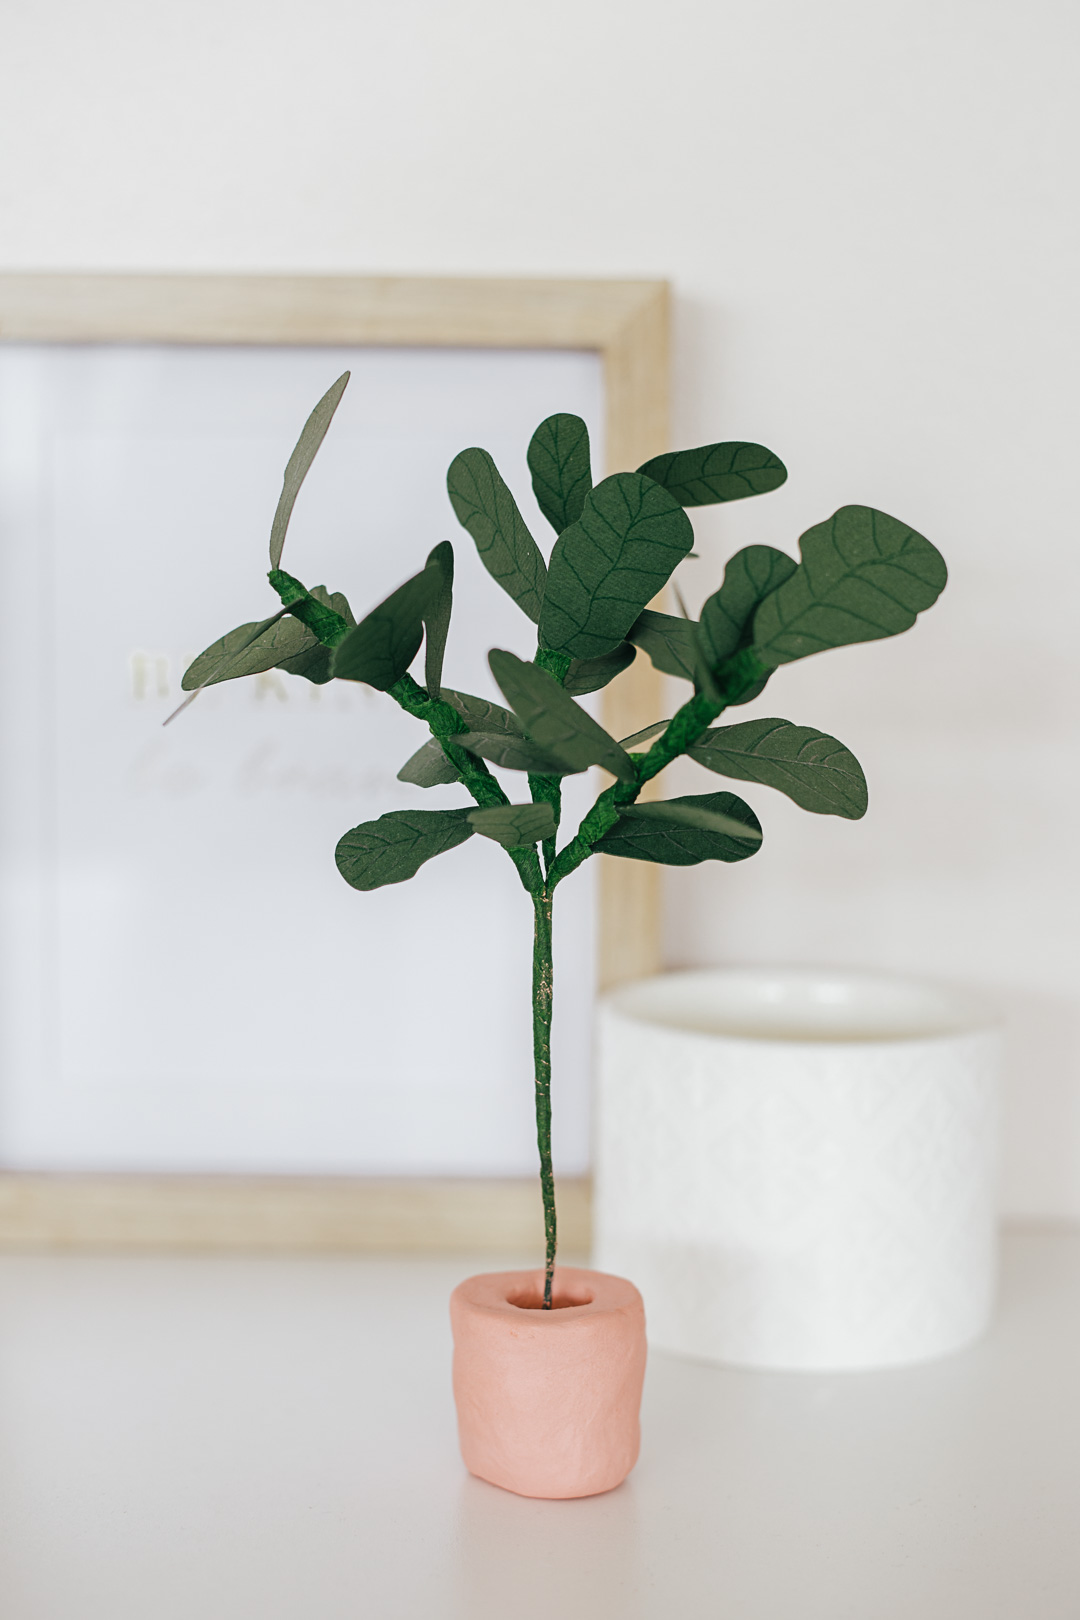 DIY Paper Fiddle Leaf Fig - Post includes free Silhouette or Cricut SVG cut file.